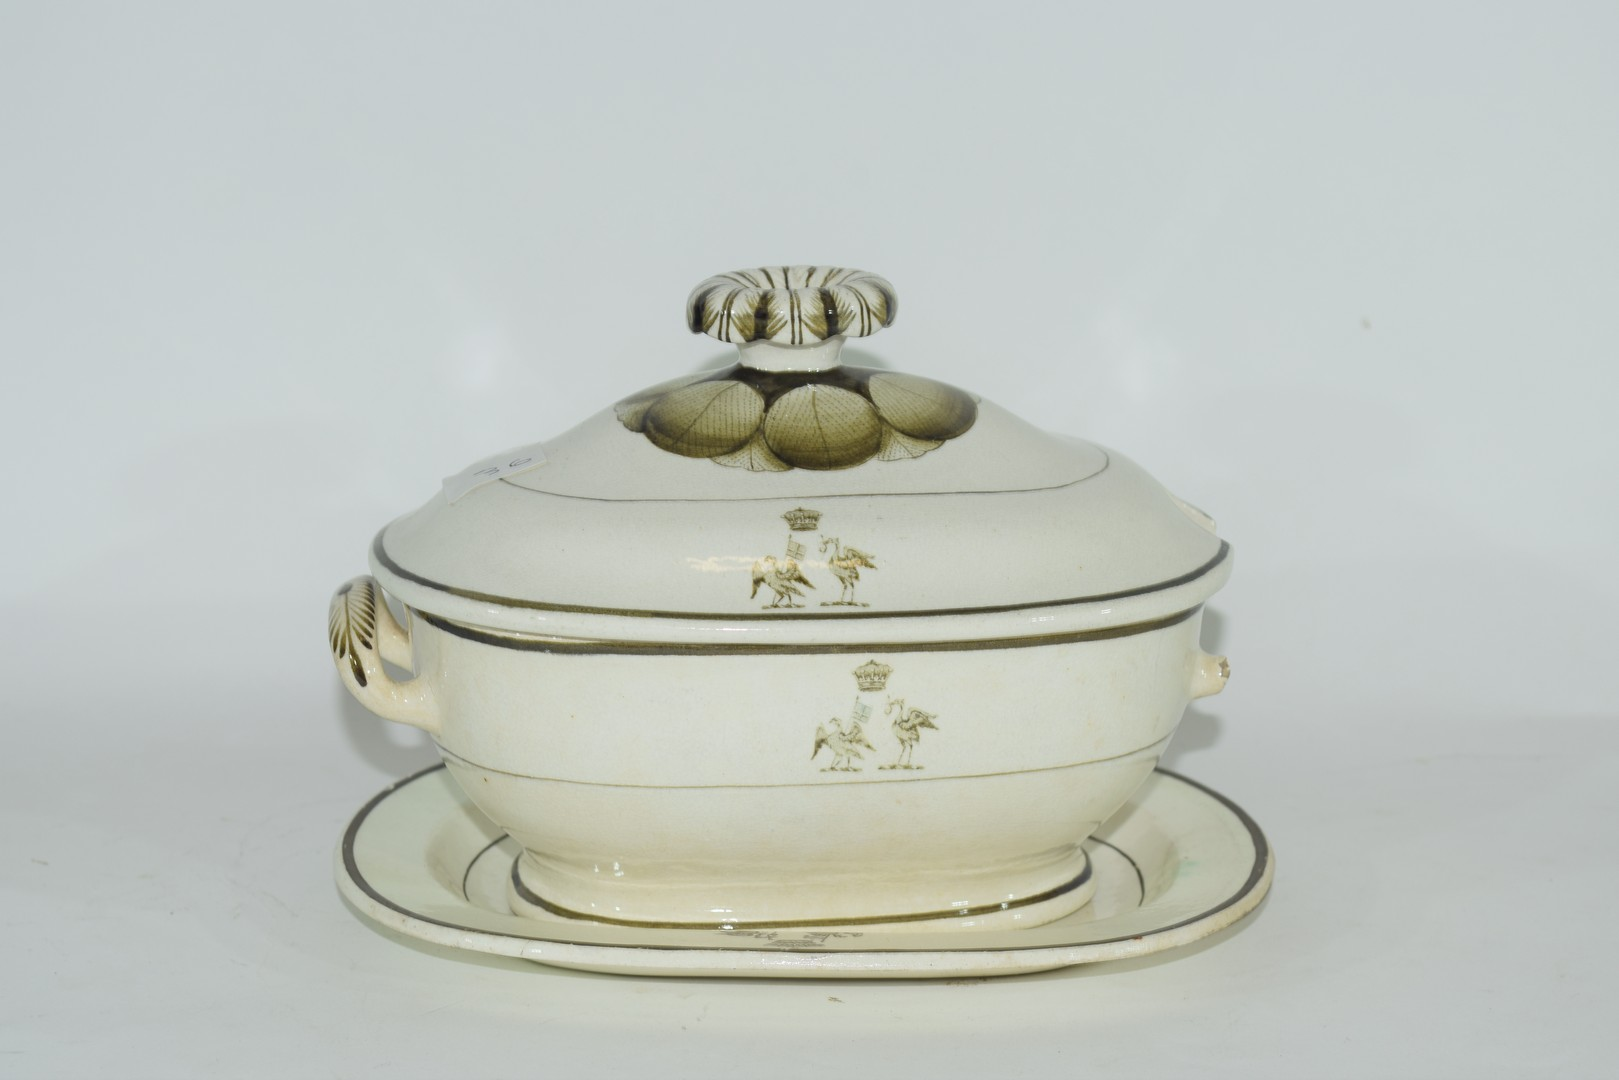 Late 18th century Rogers pearlware small tureen - Image 3 of 6